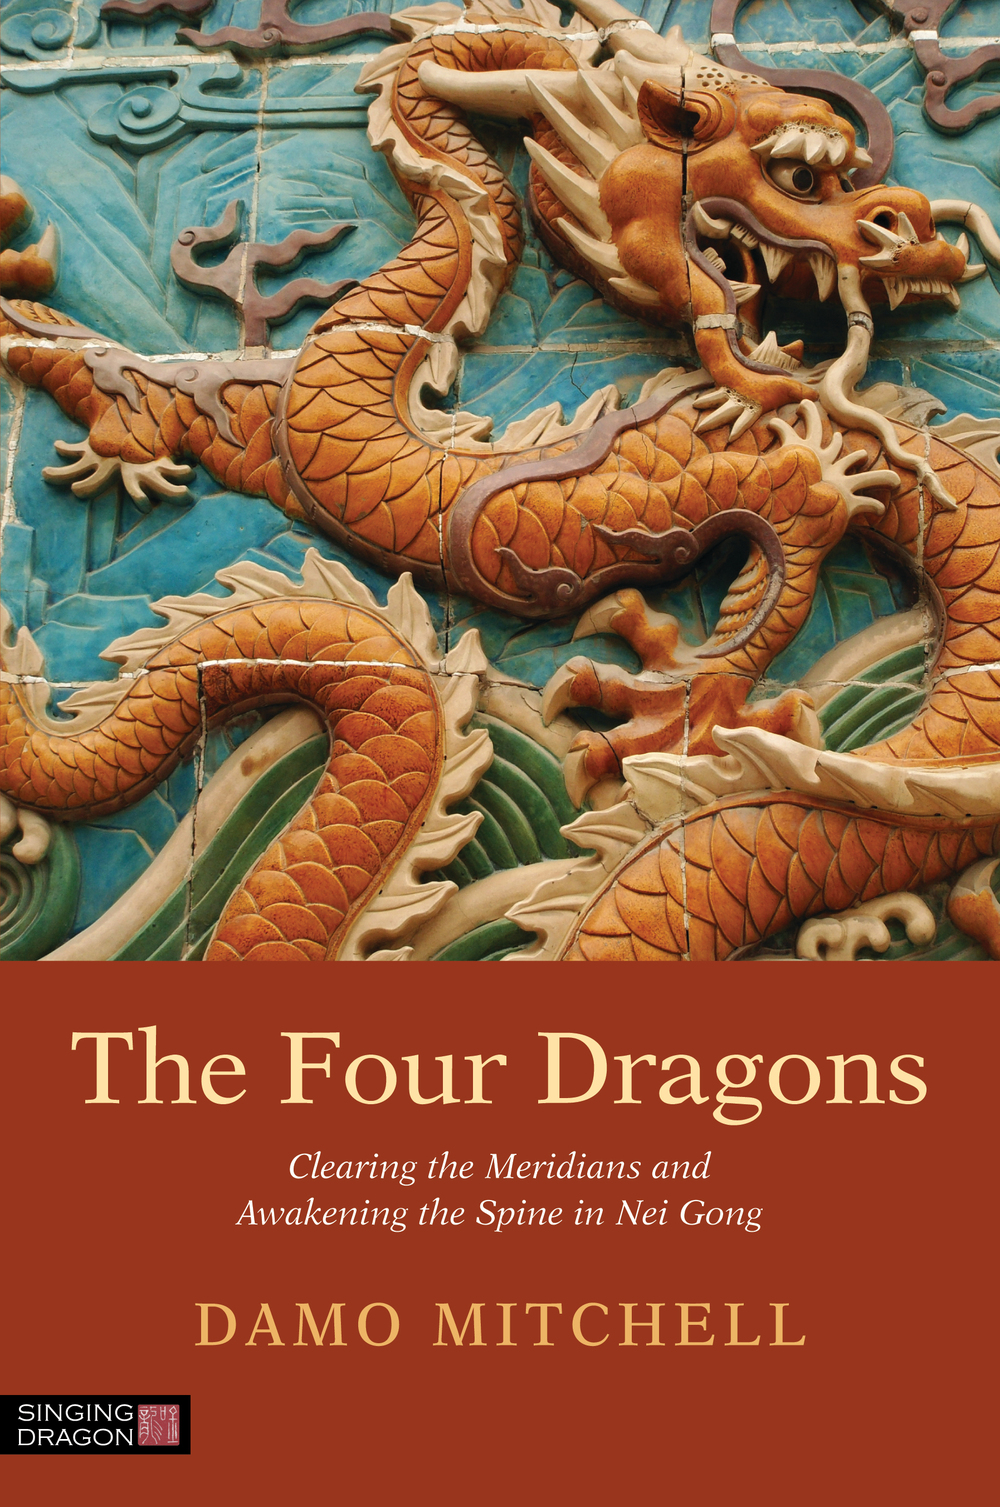 The Four Dragons Clearing the Meridians and Awakening the Spine in Nei Gong